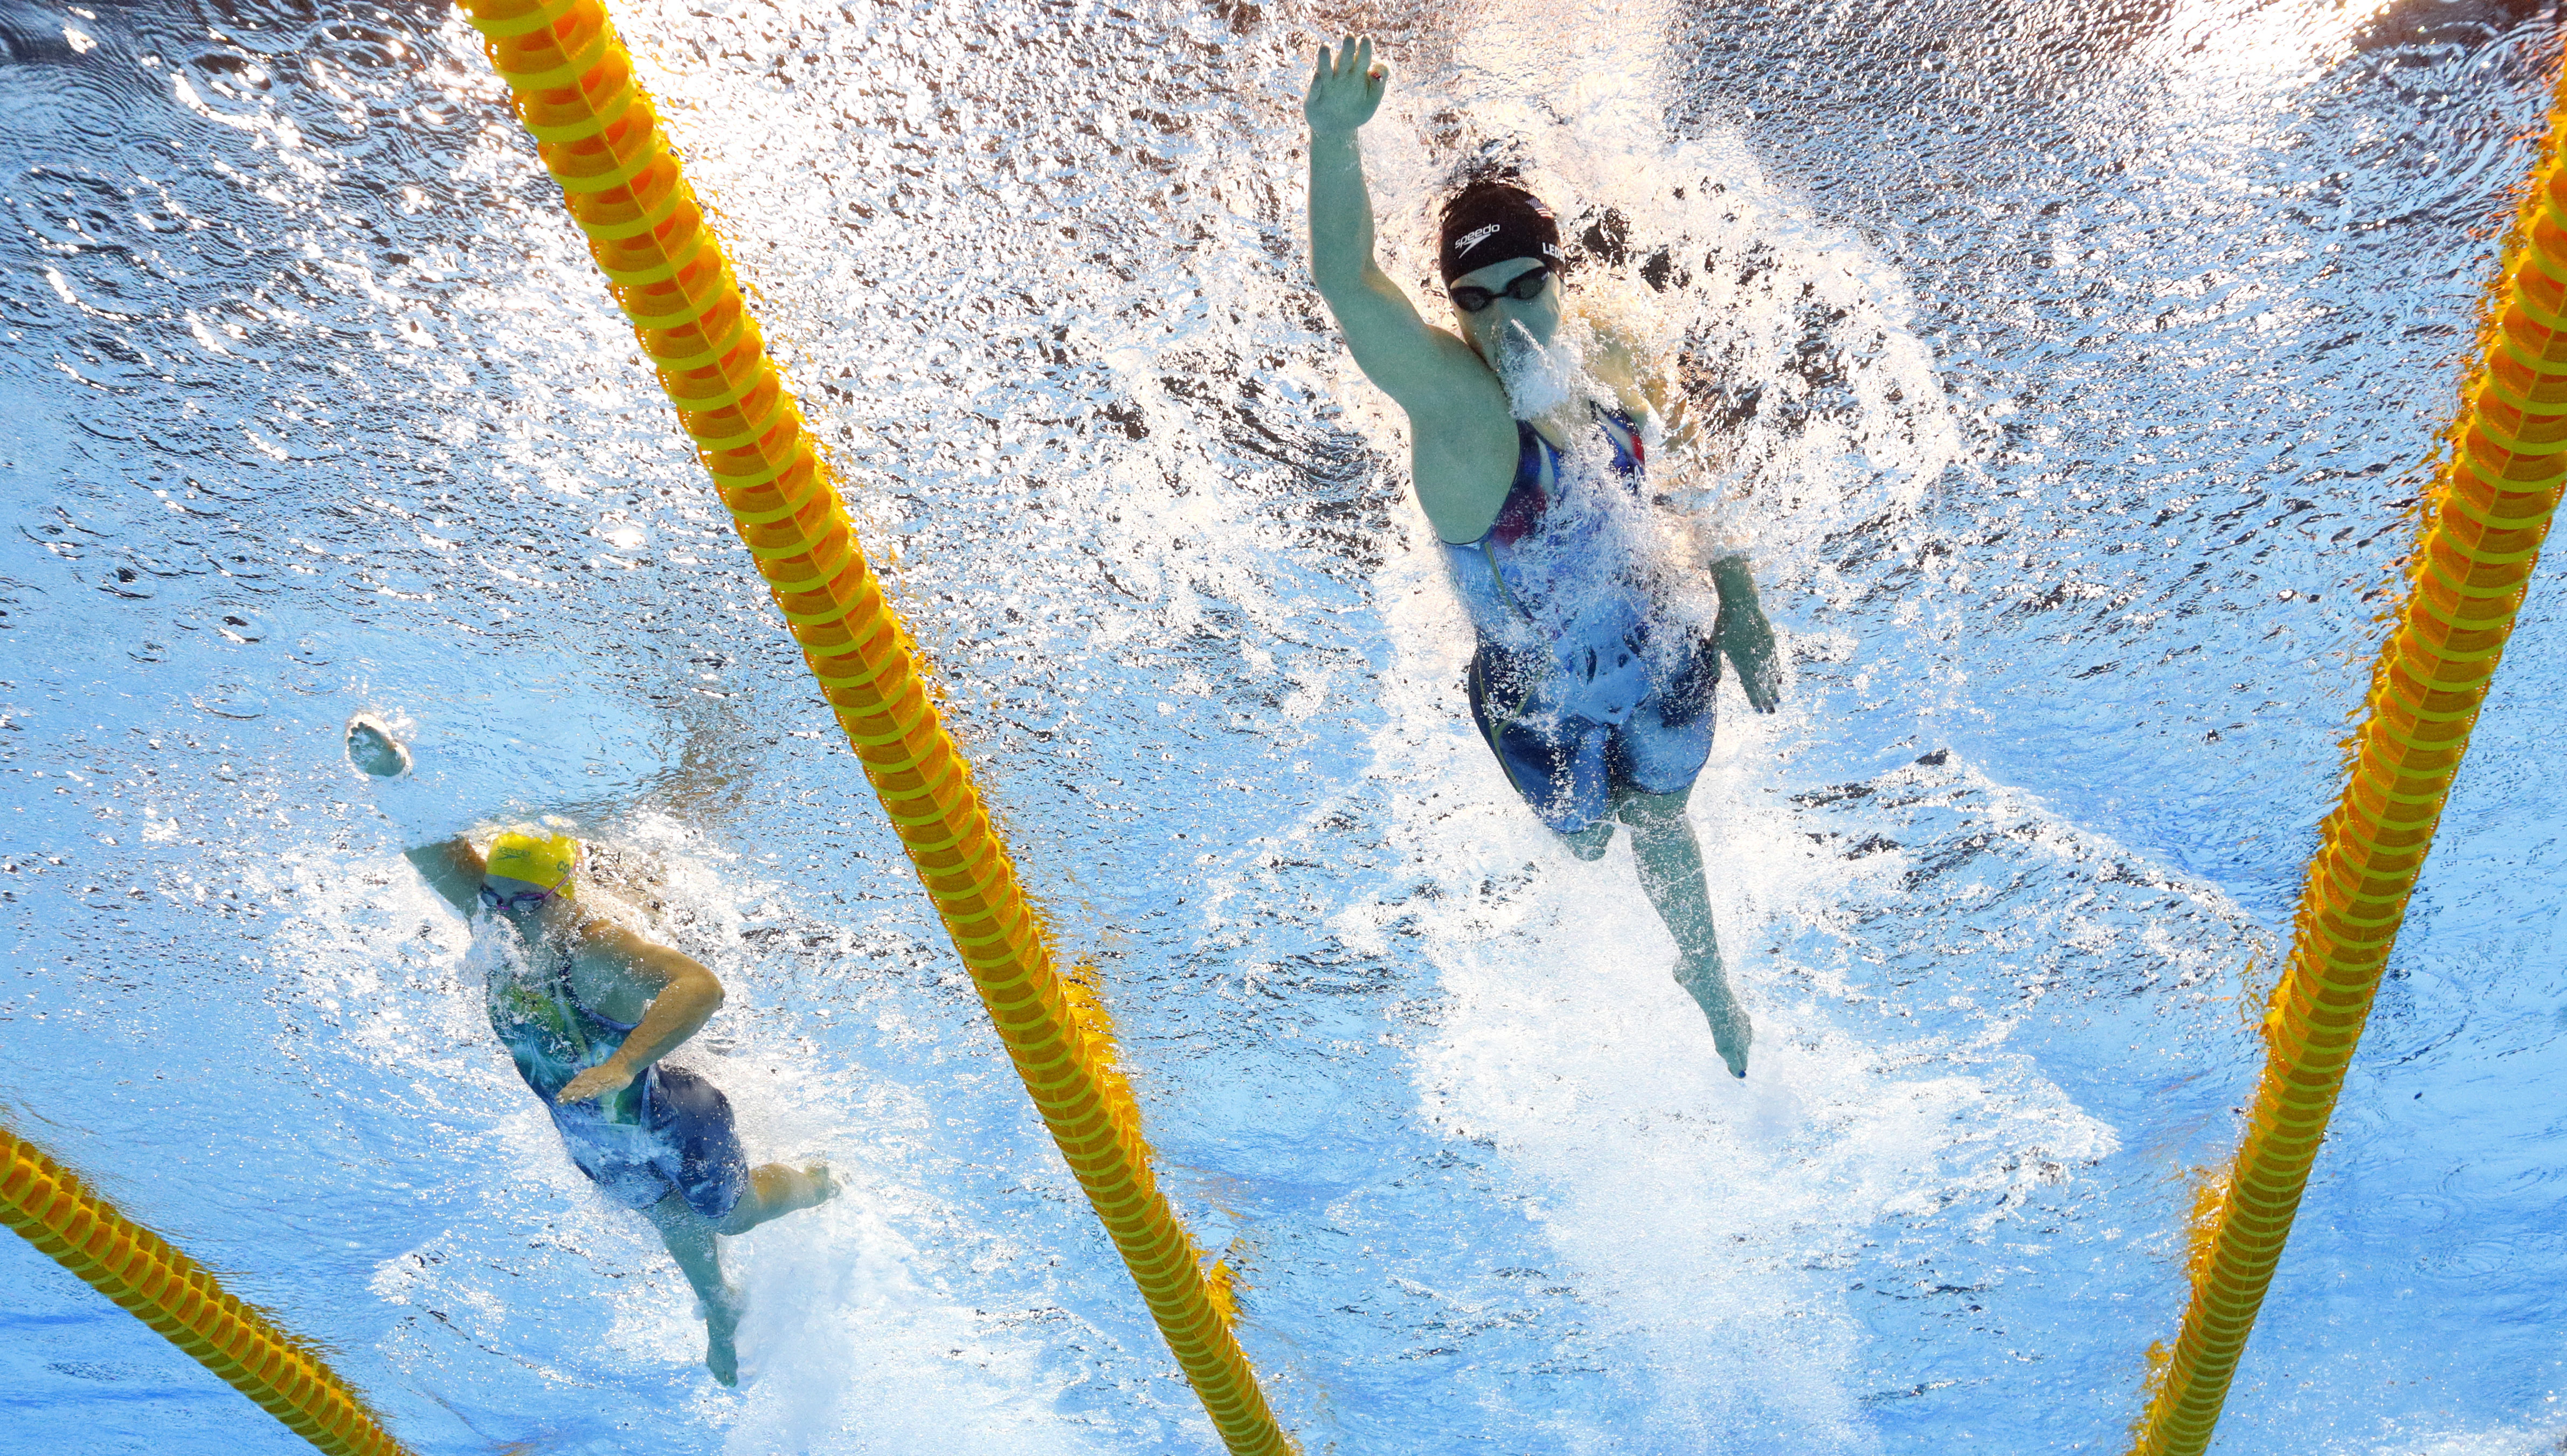 United States' Katie Ledecky, right, swims the last leg in the final of the women's 4x200-meter freestyle relay during the swimming competitions at the 2016 Summer Olympics in Rio de Janeiro, Brazil, Thursday, Aug. 11, 2016. (AP Photo/David J. Phillip)